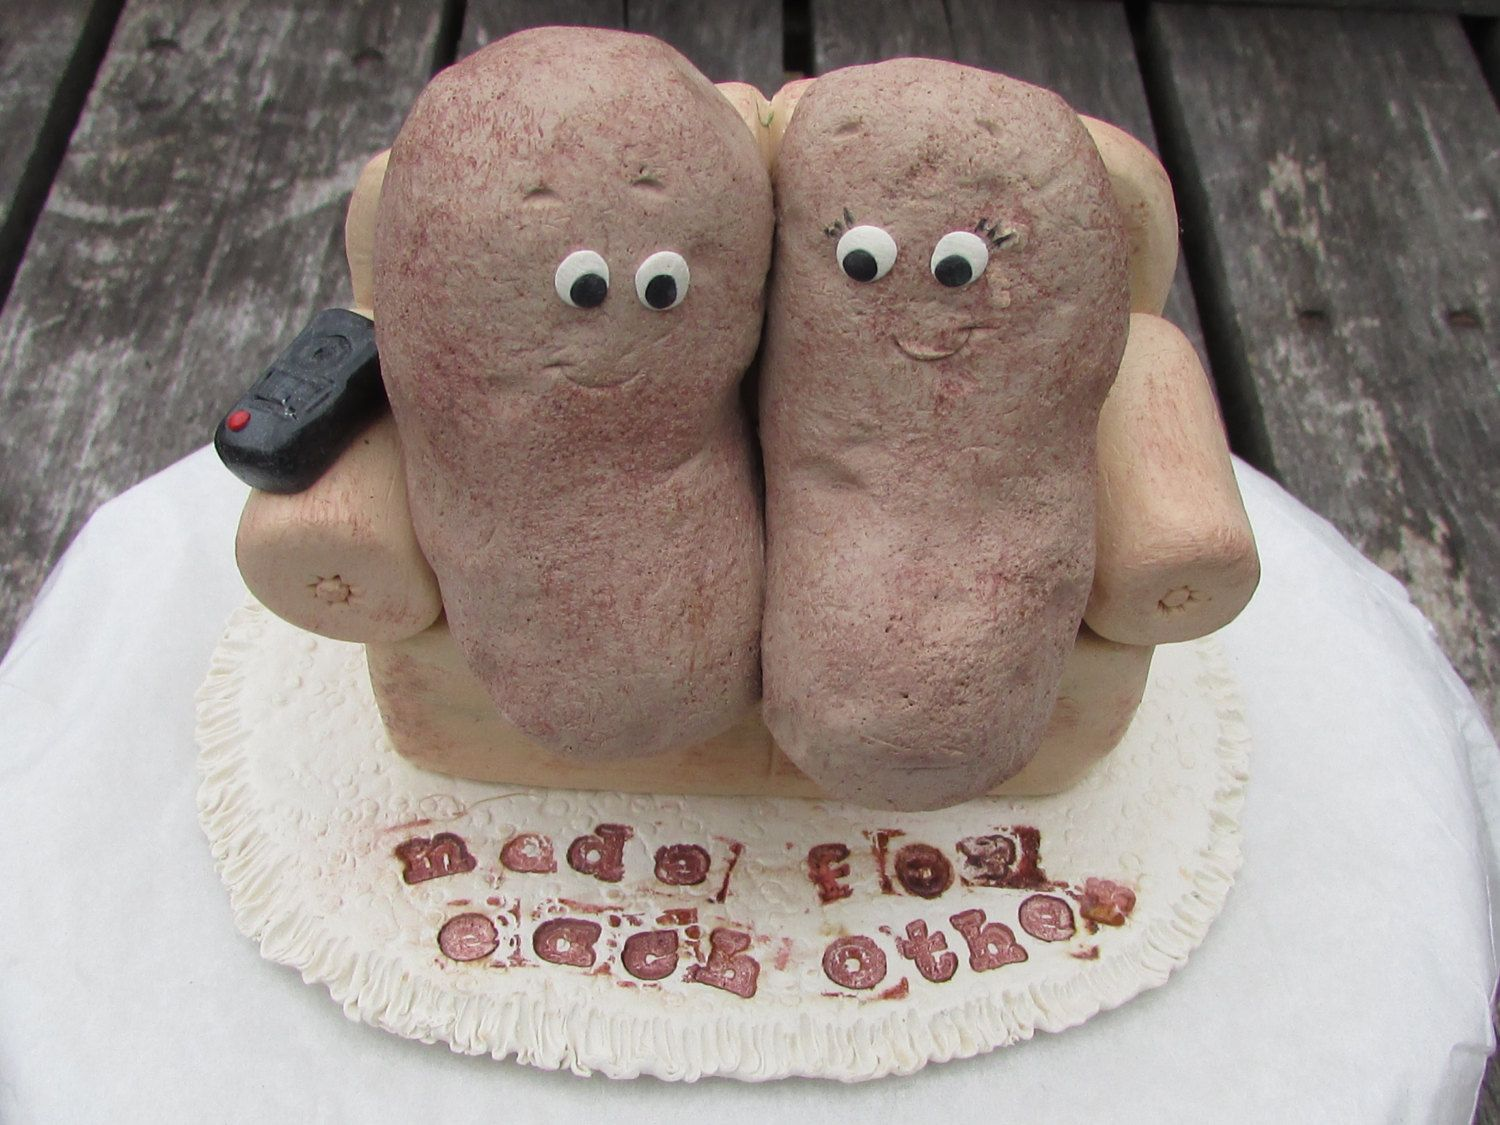 Couch Potato Wedding Cake Topper Unique Wedding Cake Topper Couch Potatoes Made For Each Other C Wedding Cake Toppers Unique Wedding Cake Toppers Food Humor